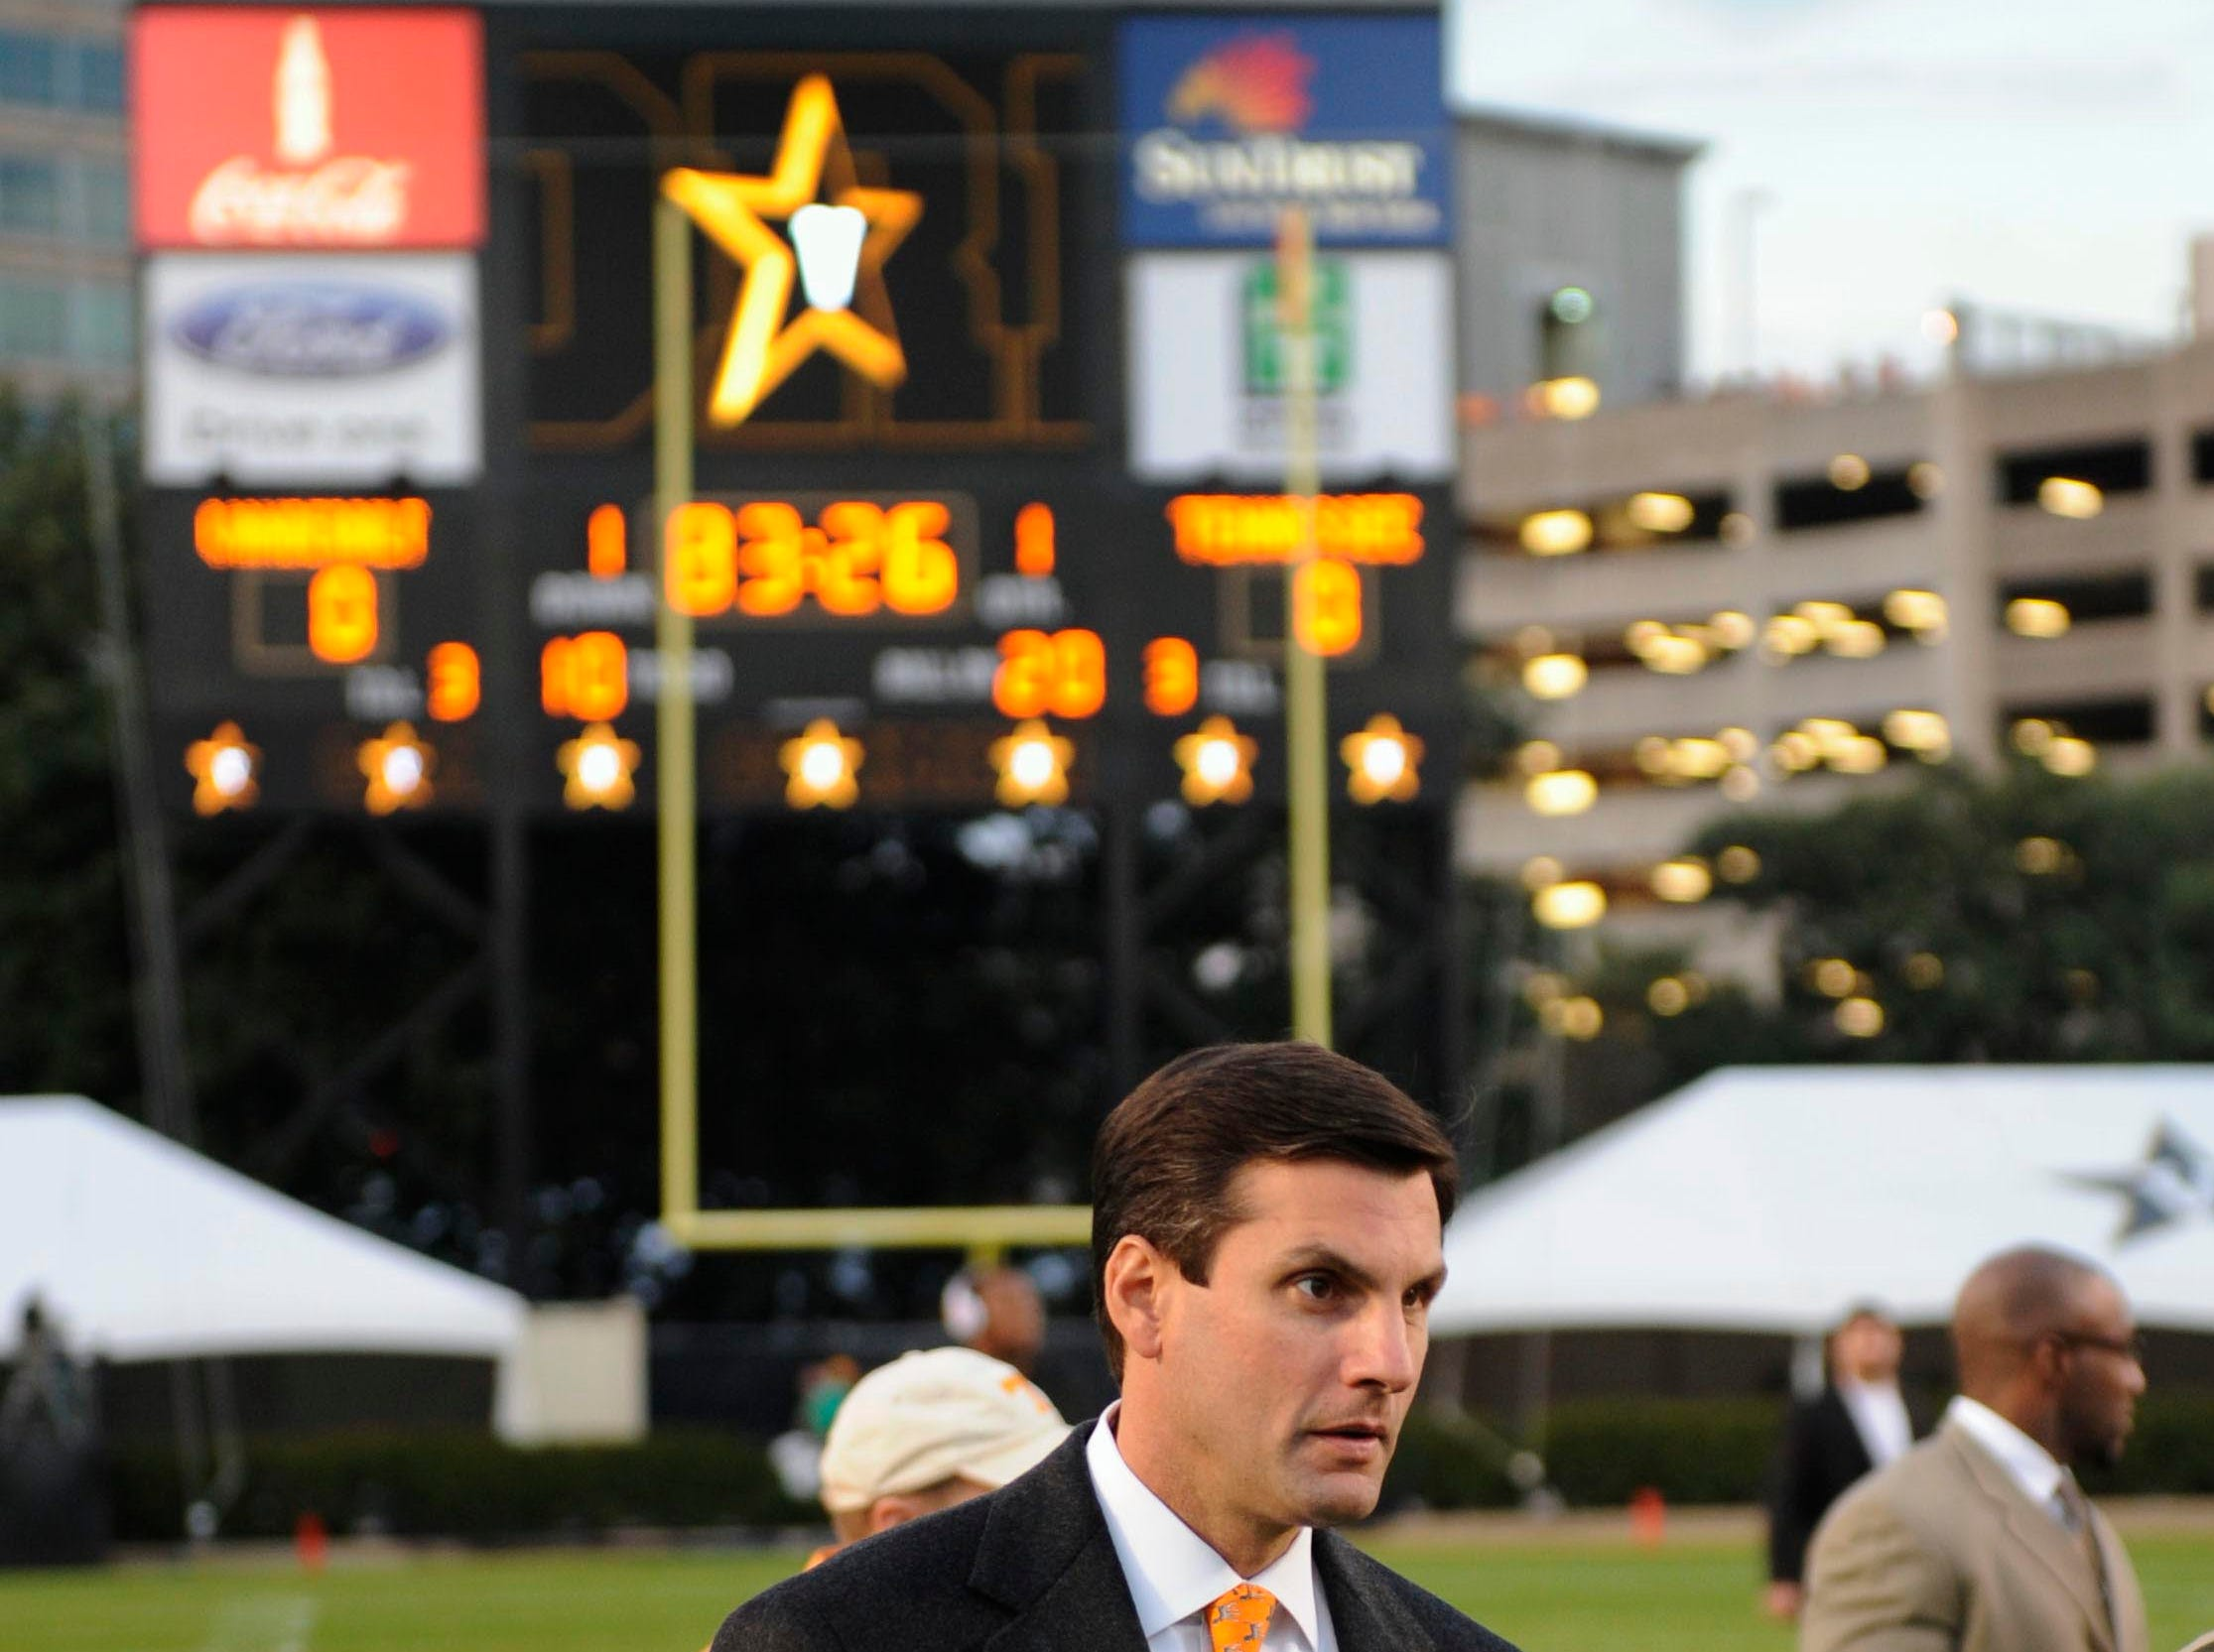 Tennessee head coach Derek Dooley walks across the field as he and the team arrived Saturday, Nov. 20, 2010 in Vanderbilt Stadium in Nashville.